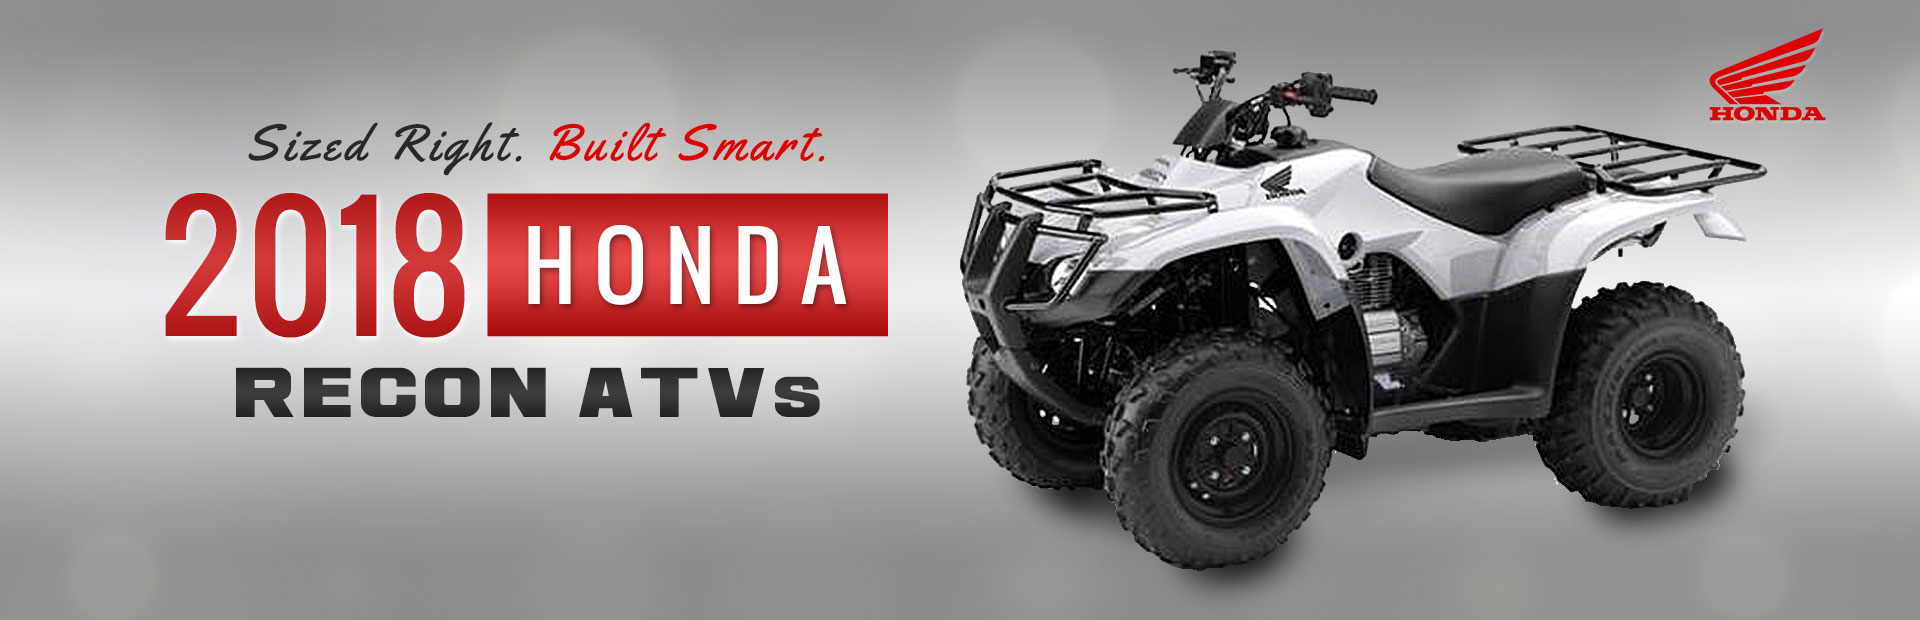 2018 Honda Recon ATVs: Click here to view the models.